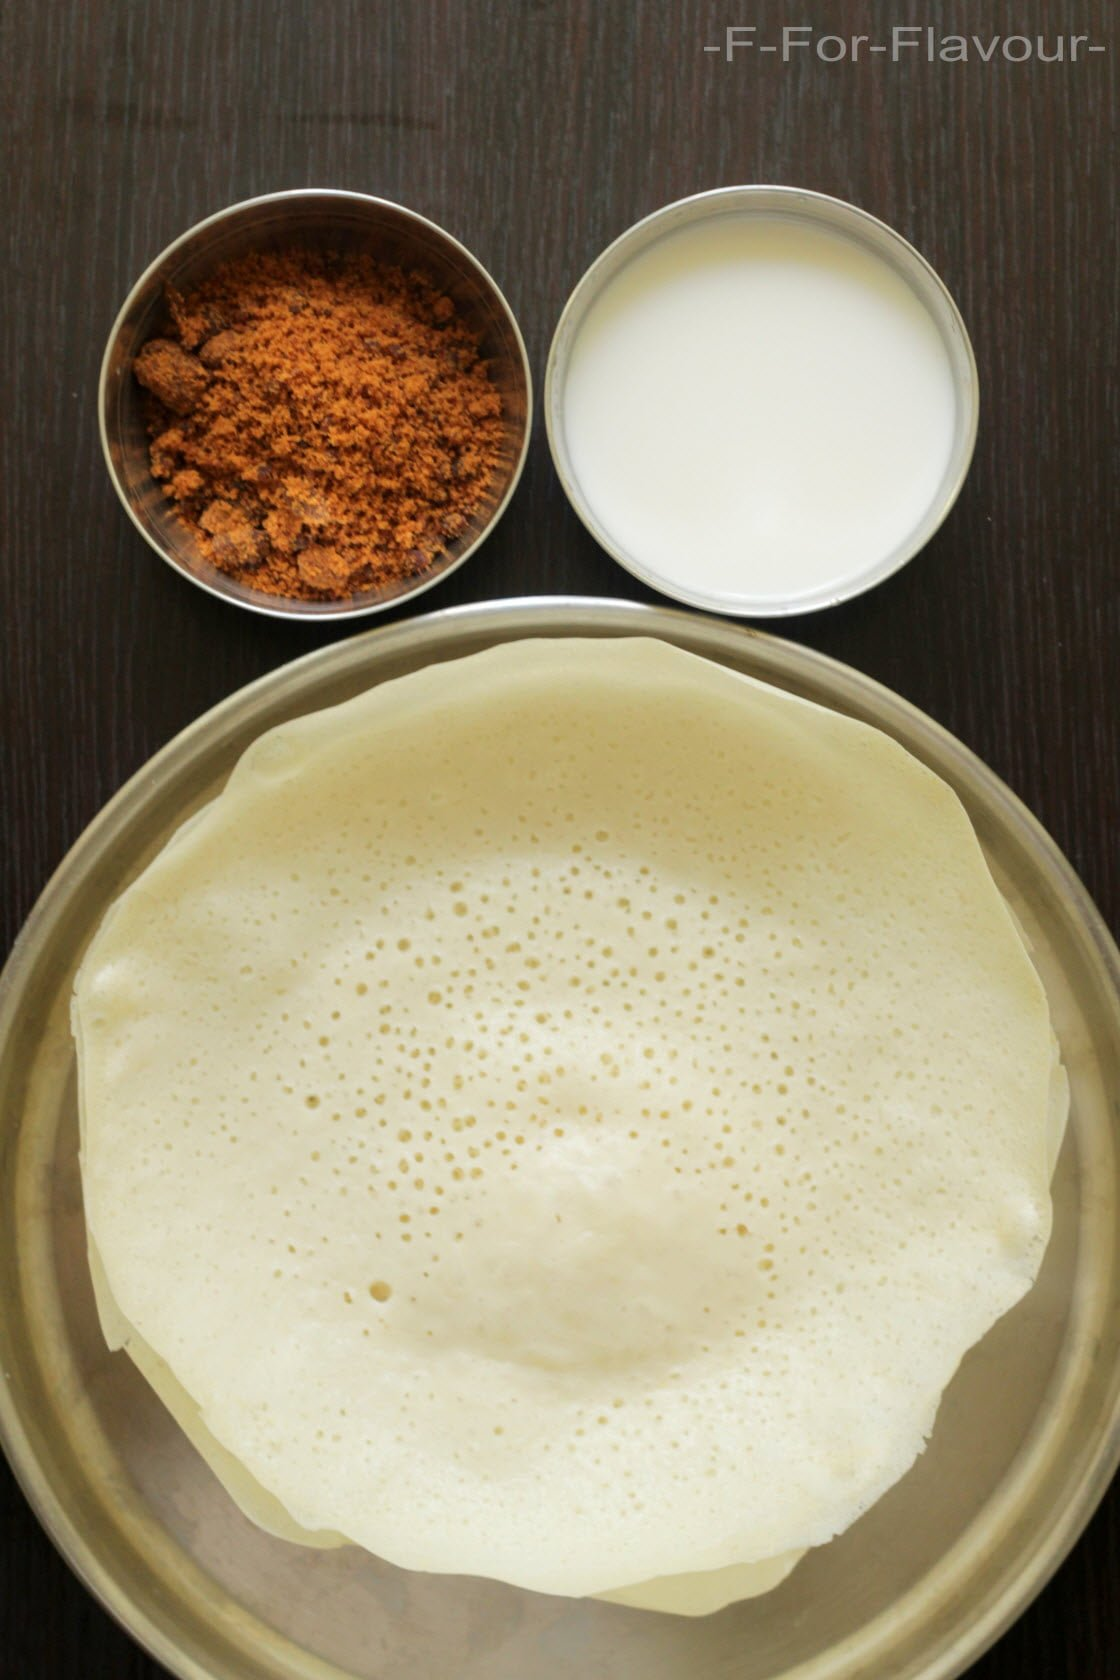 appam served with coconut milk and brown sugar